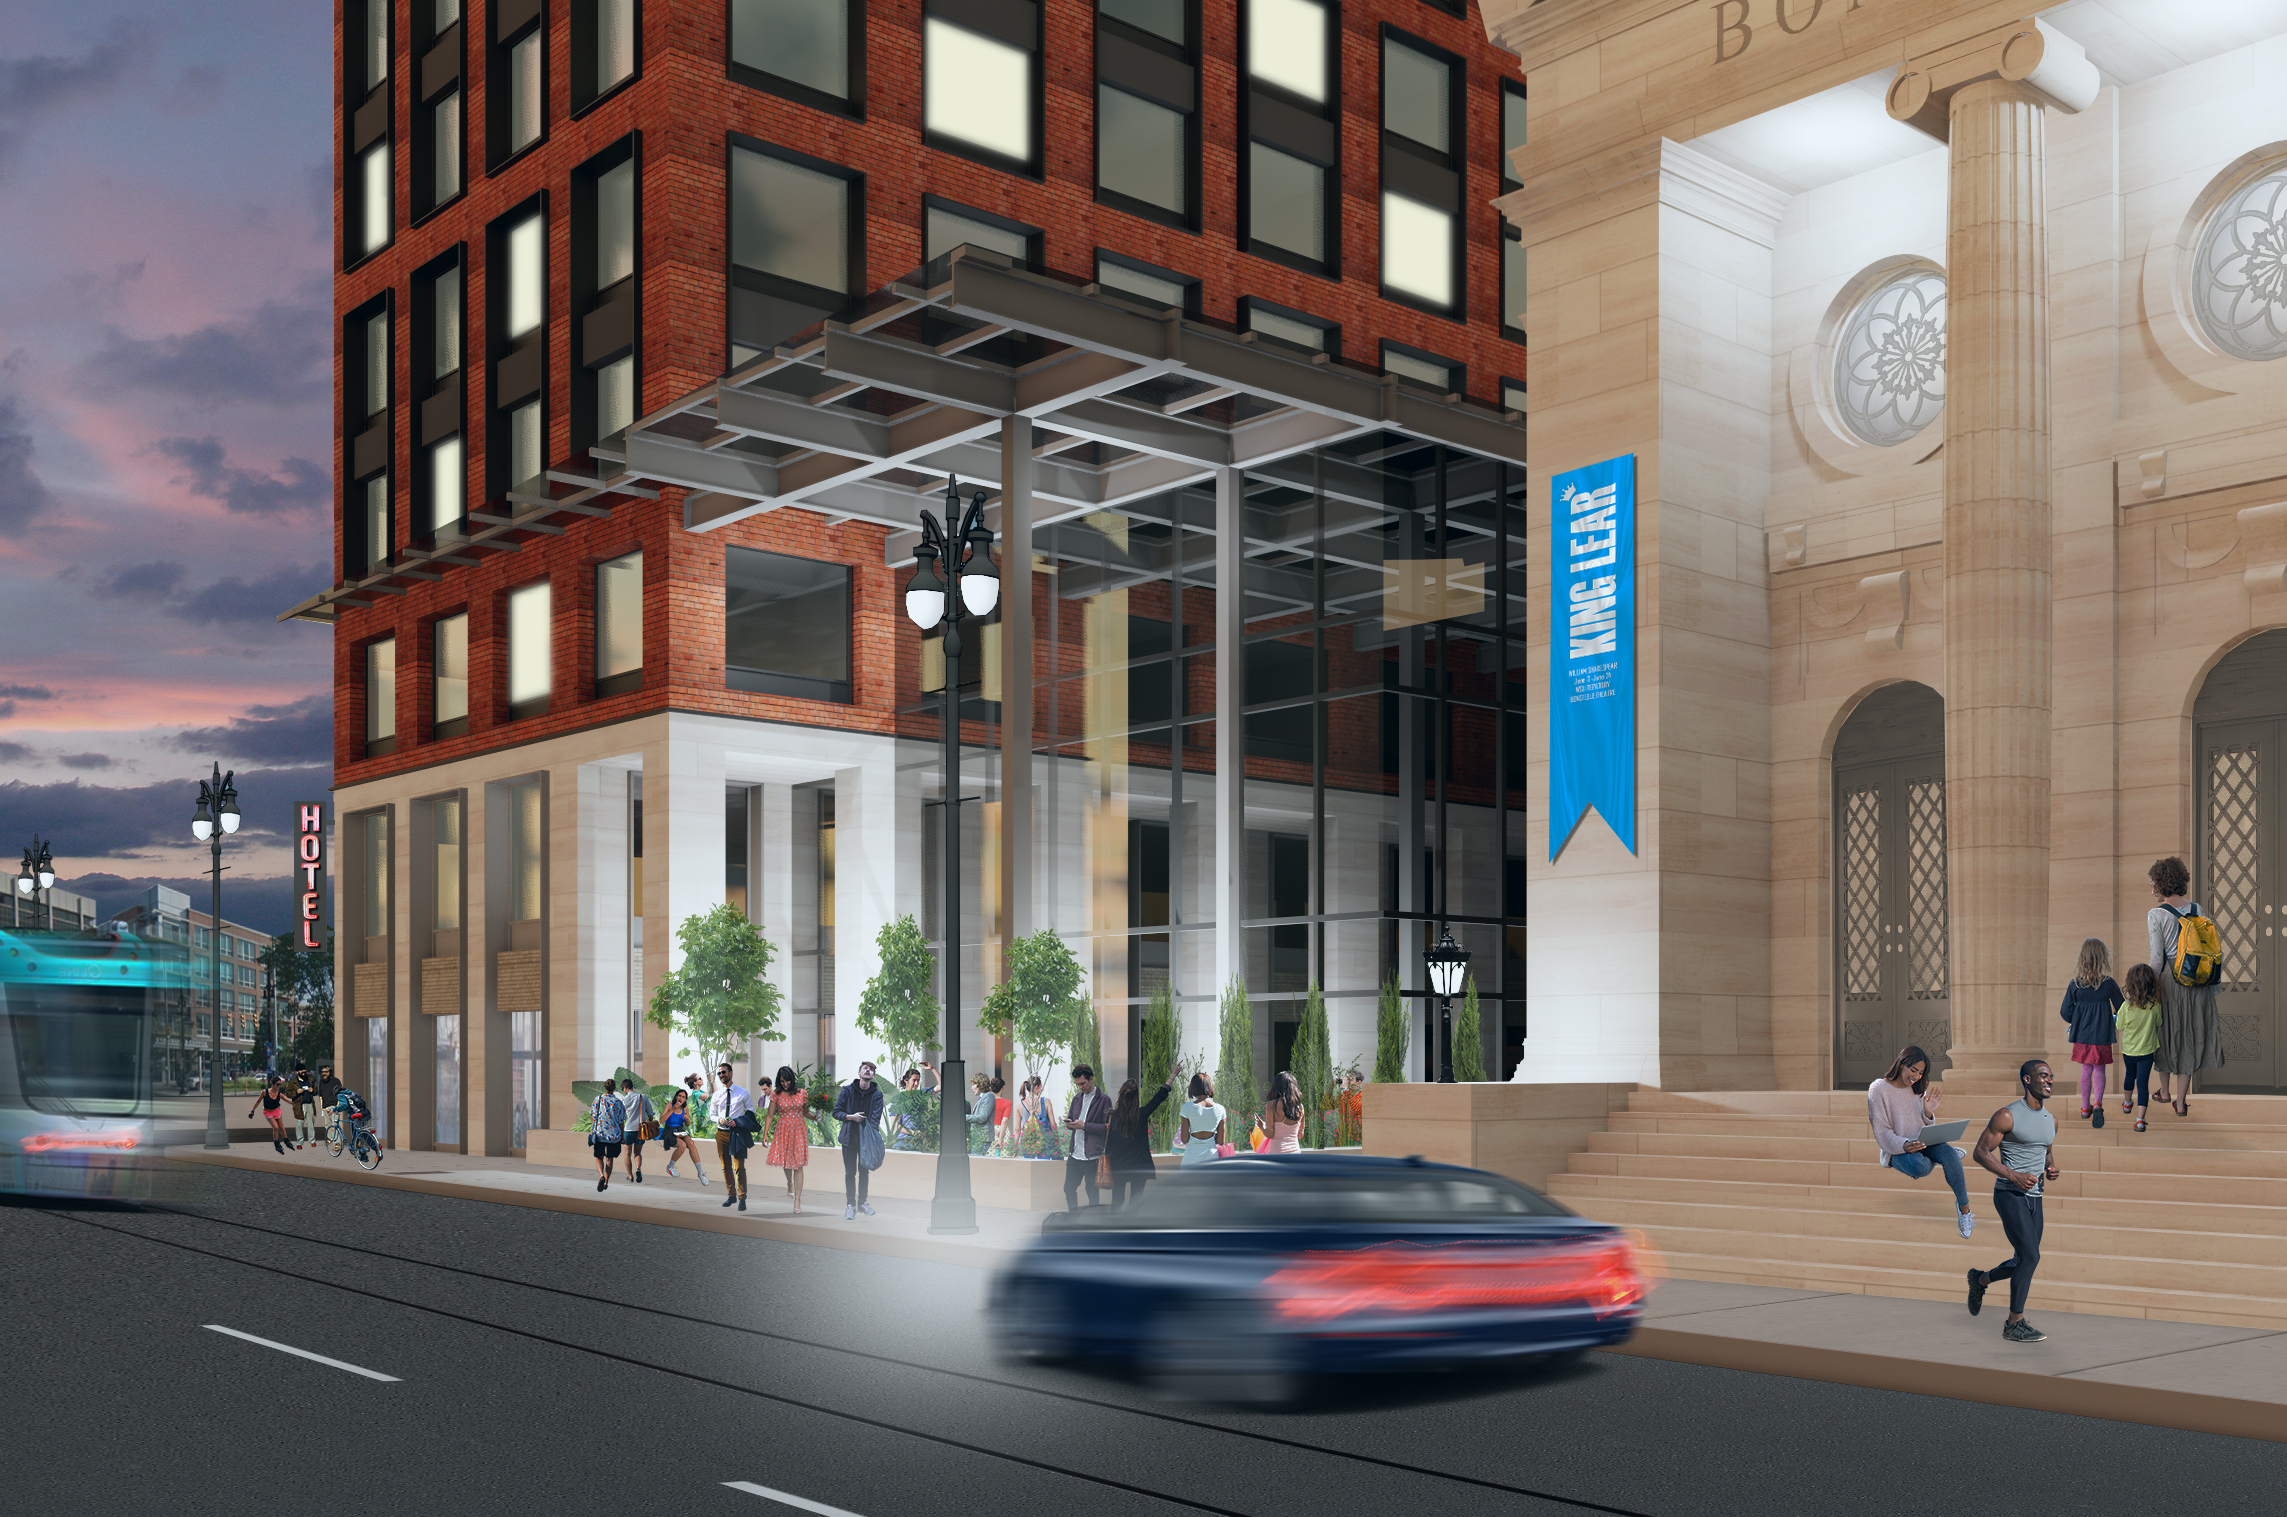 Rendering of street-level view of a tall, rectangular building on the left. On the right is a neo-classical building made of white marble with columns and wide steps leading to the entrance.